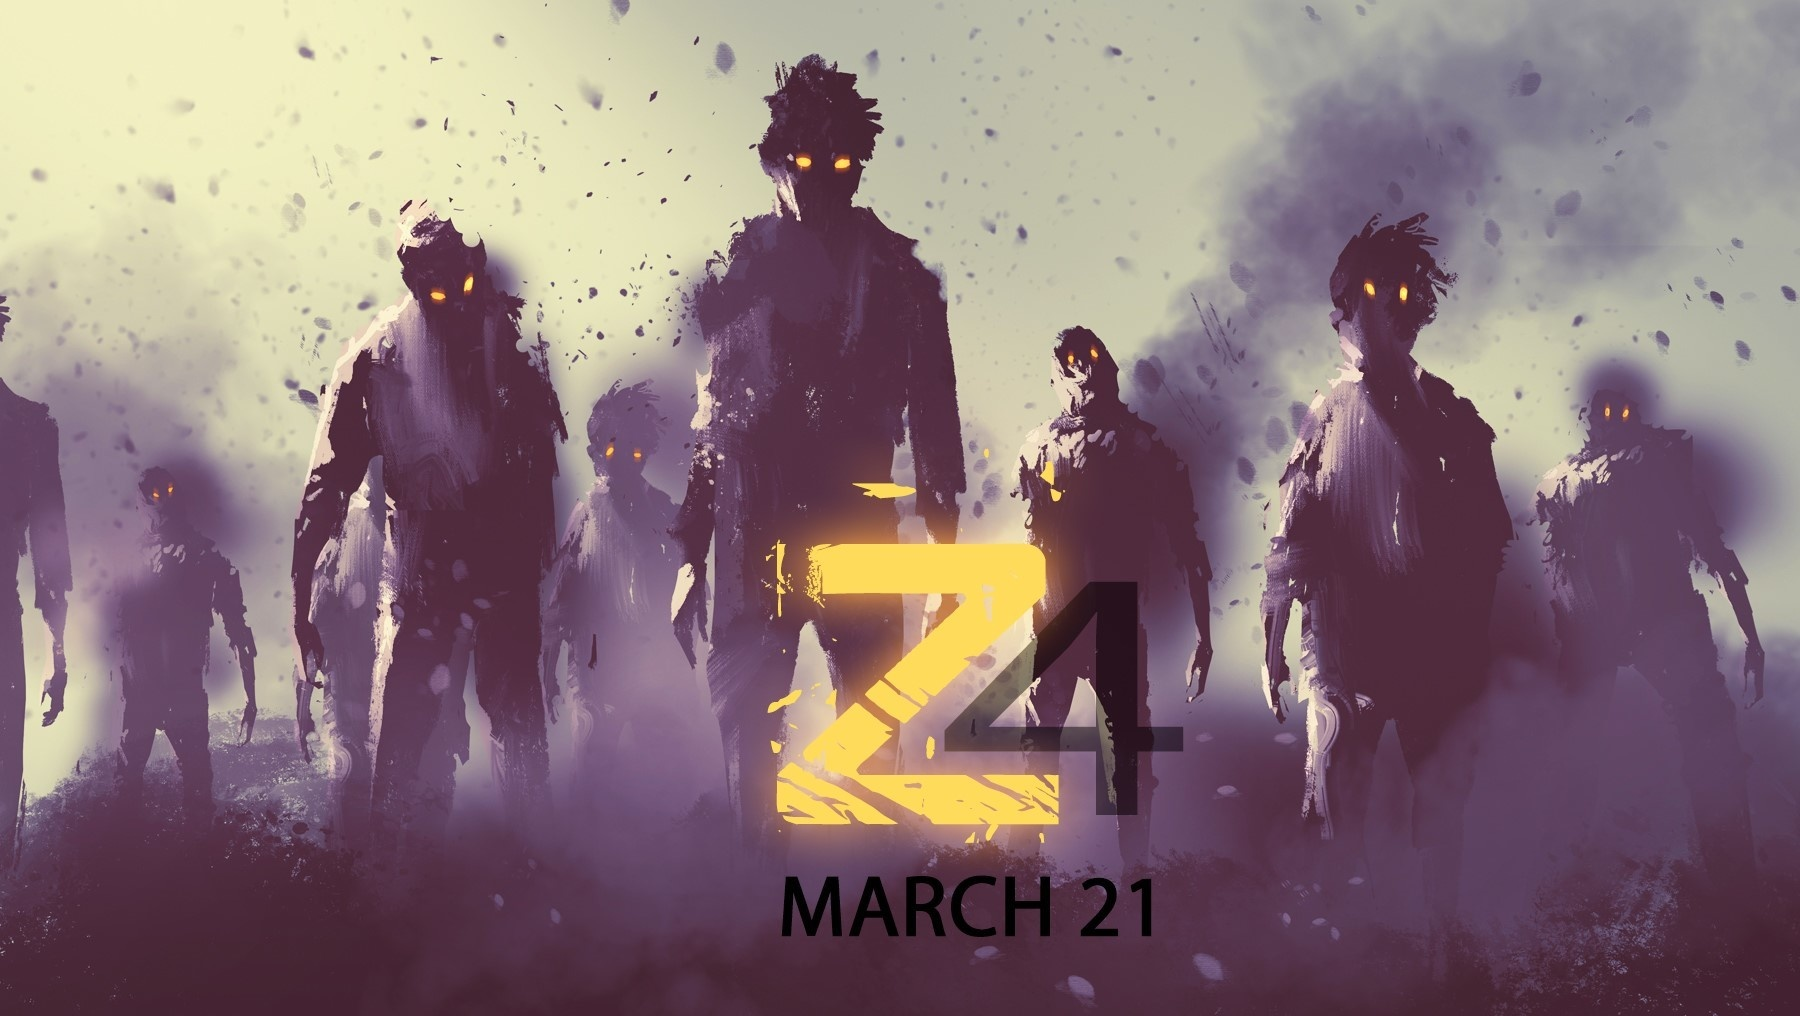 Ballahack Airsoft Z IV (March 21st, 2020)